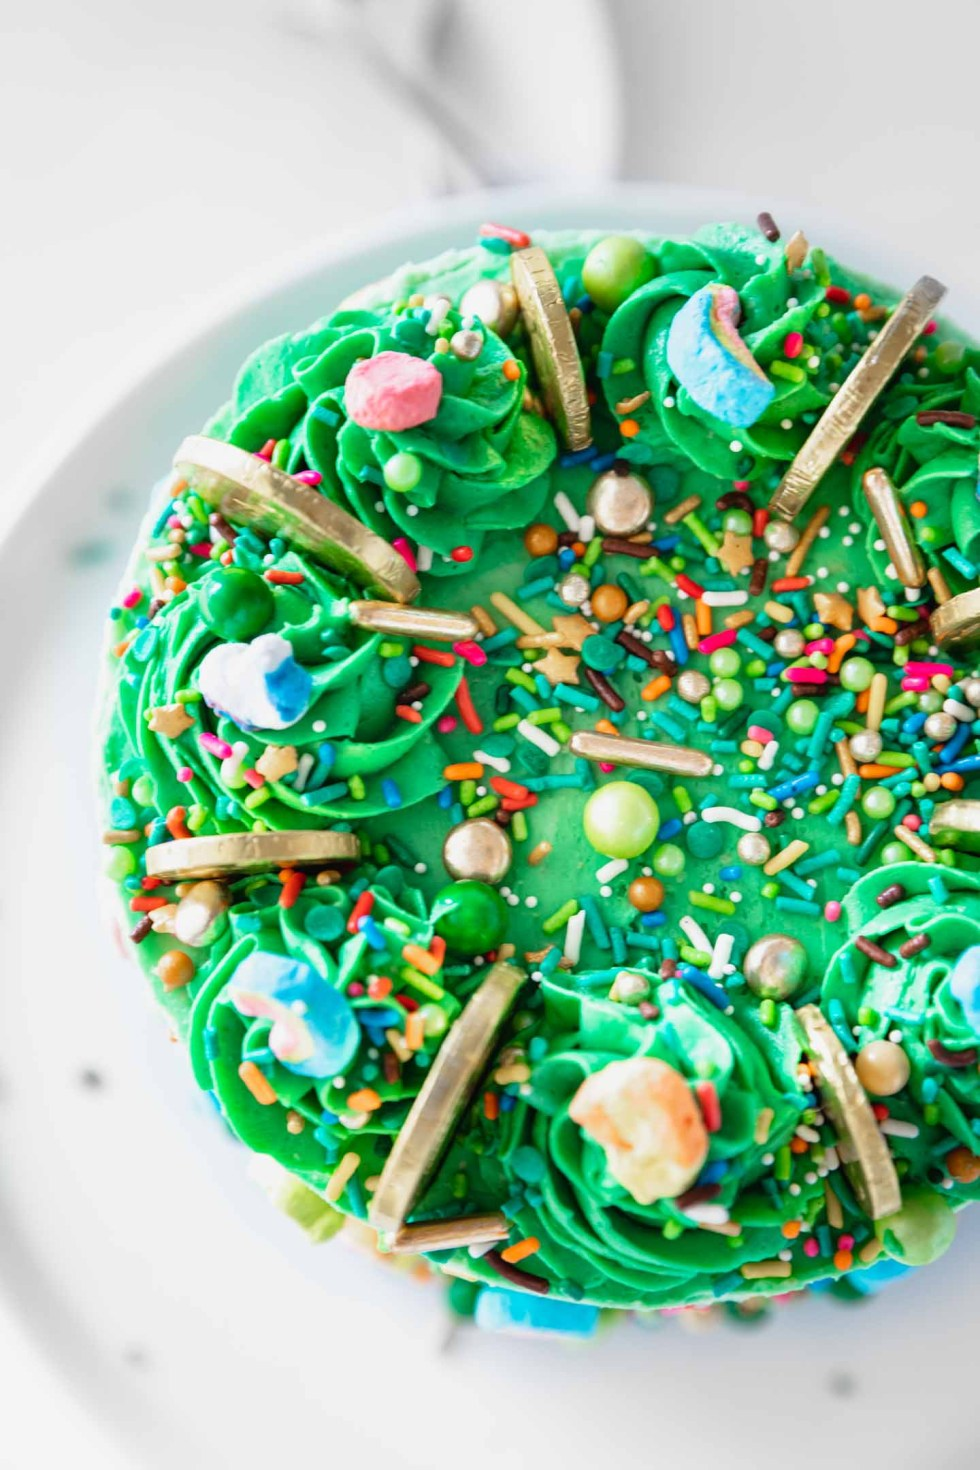 Overhead view of cake top with buttercream swirls and St. Patrick's day sprinkles and lucky charms marshmallows